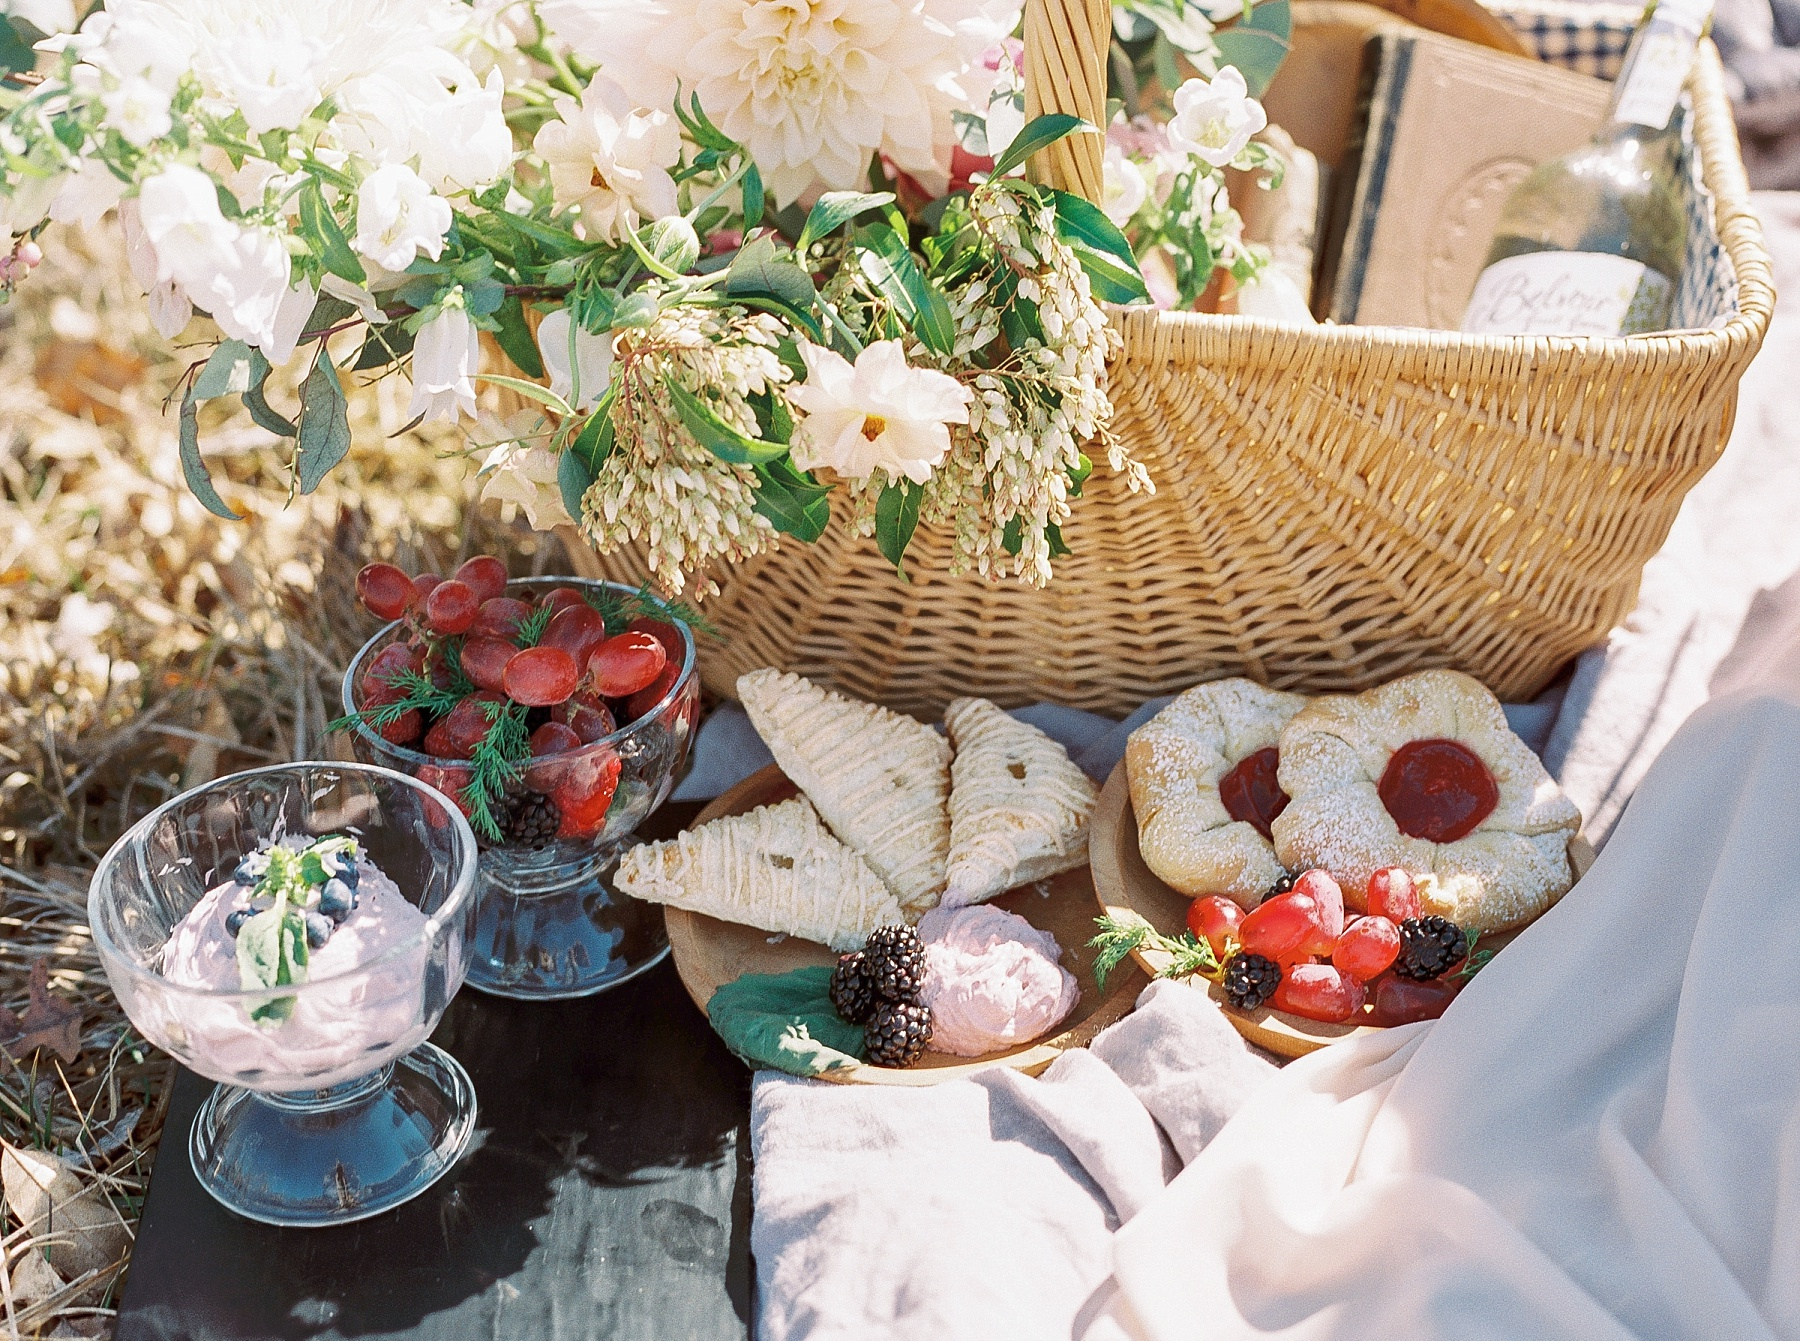 Late Fall Farm-to-table Inspired Brunch Picnic Engagement Session During Wedding Weekend by Kelsi Kliethermes Photography Best Missouri and Maui Wedding Photographer_0004.jpg